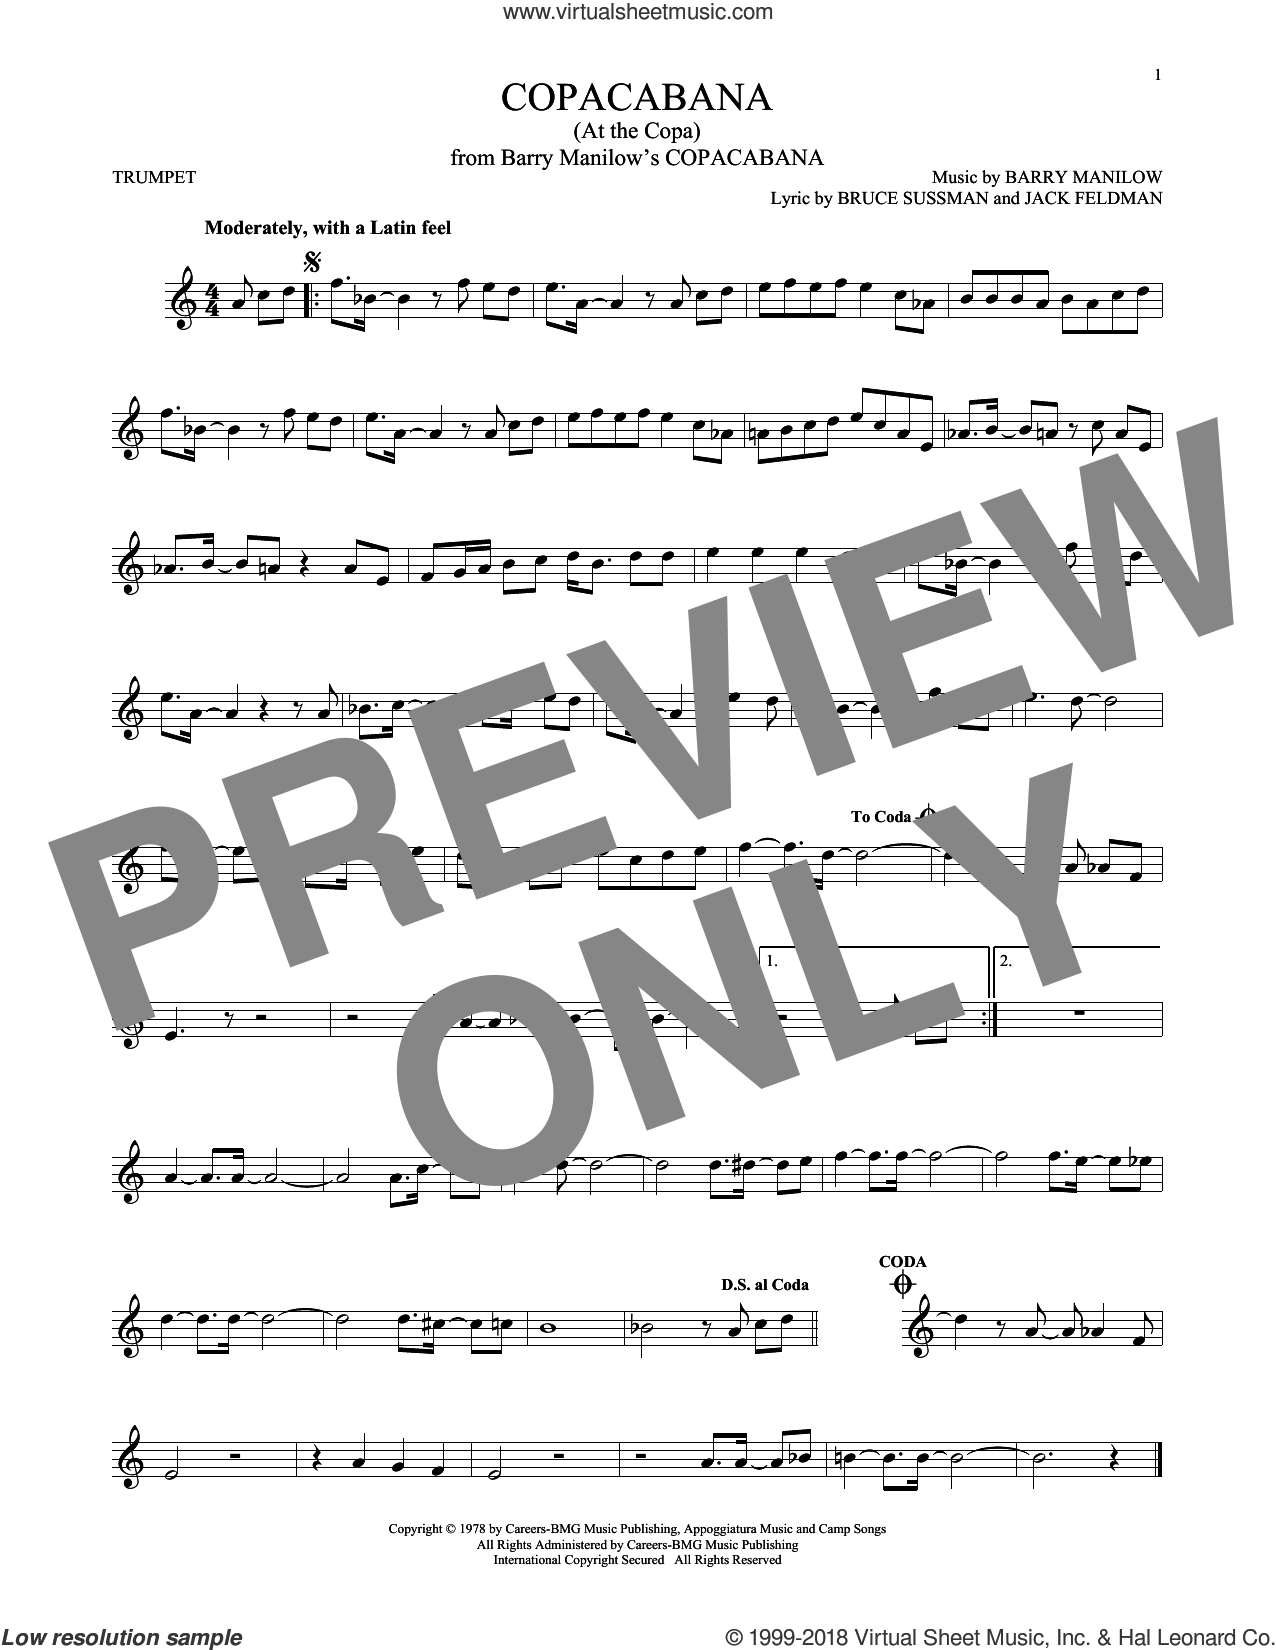 Copacabana (At The Copa) sheet music for trumpet solo by Barry Manilow, Bruce Sussman and Jack Feldman, intermediate skill level